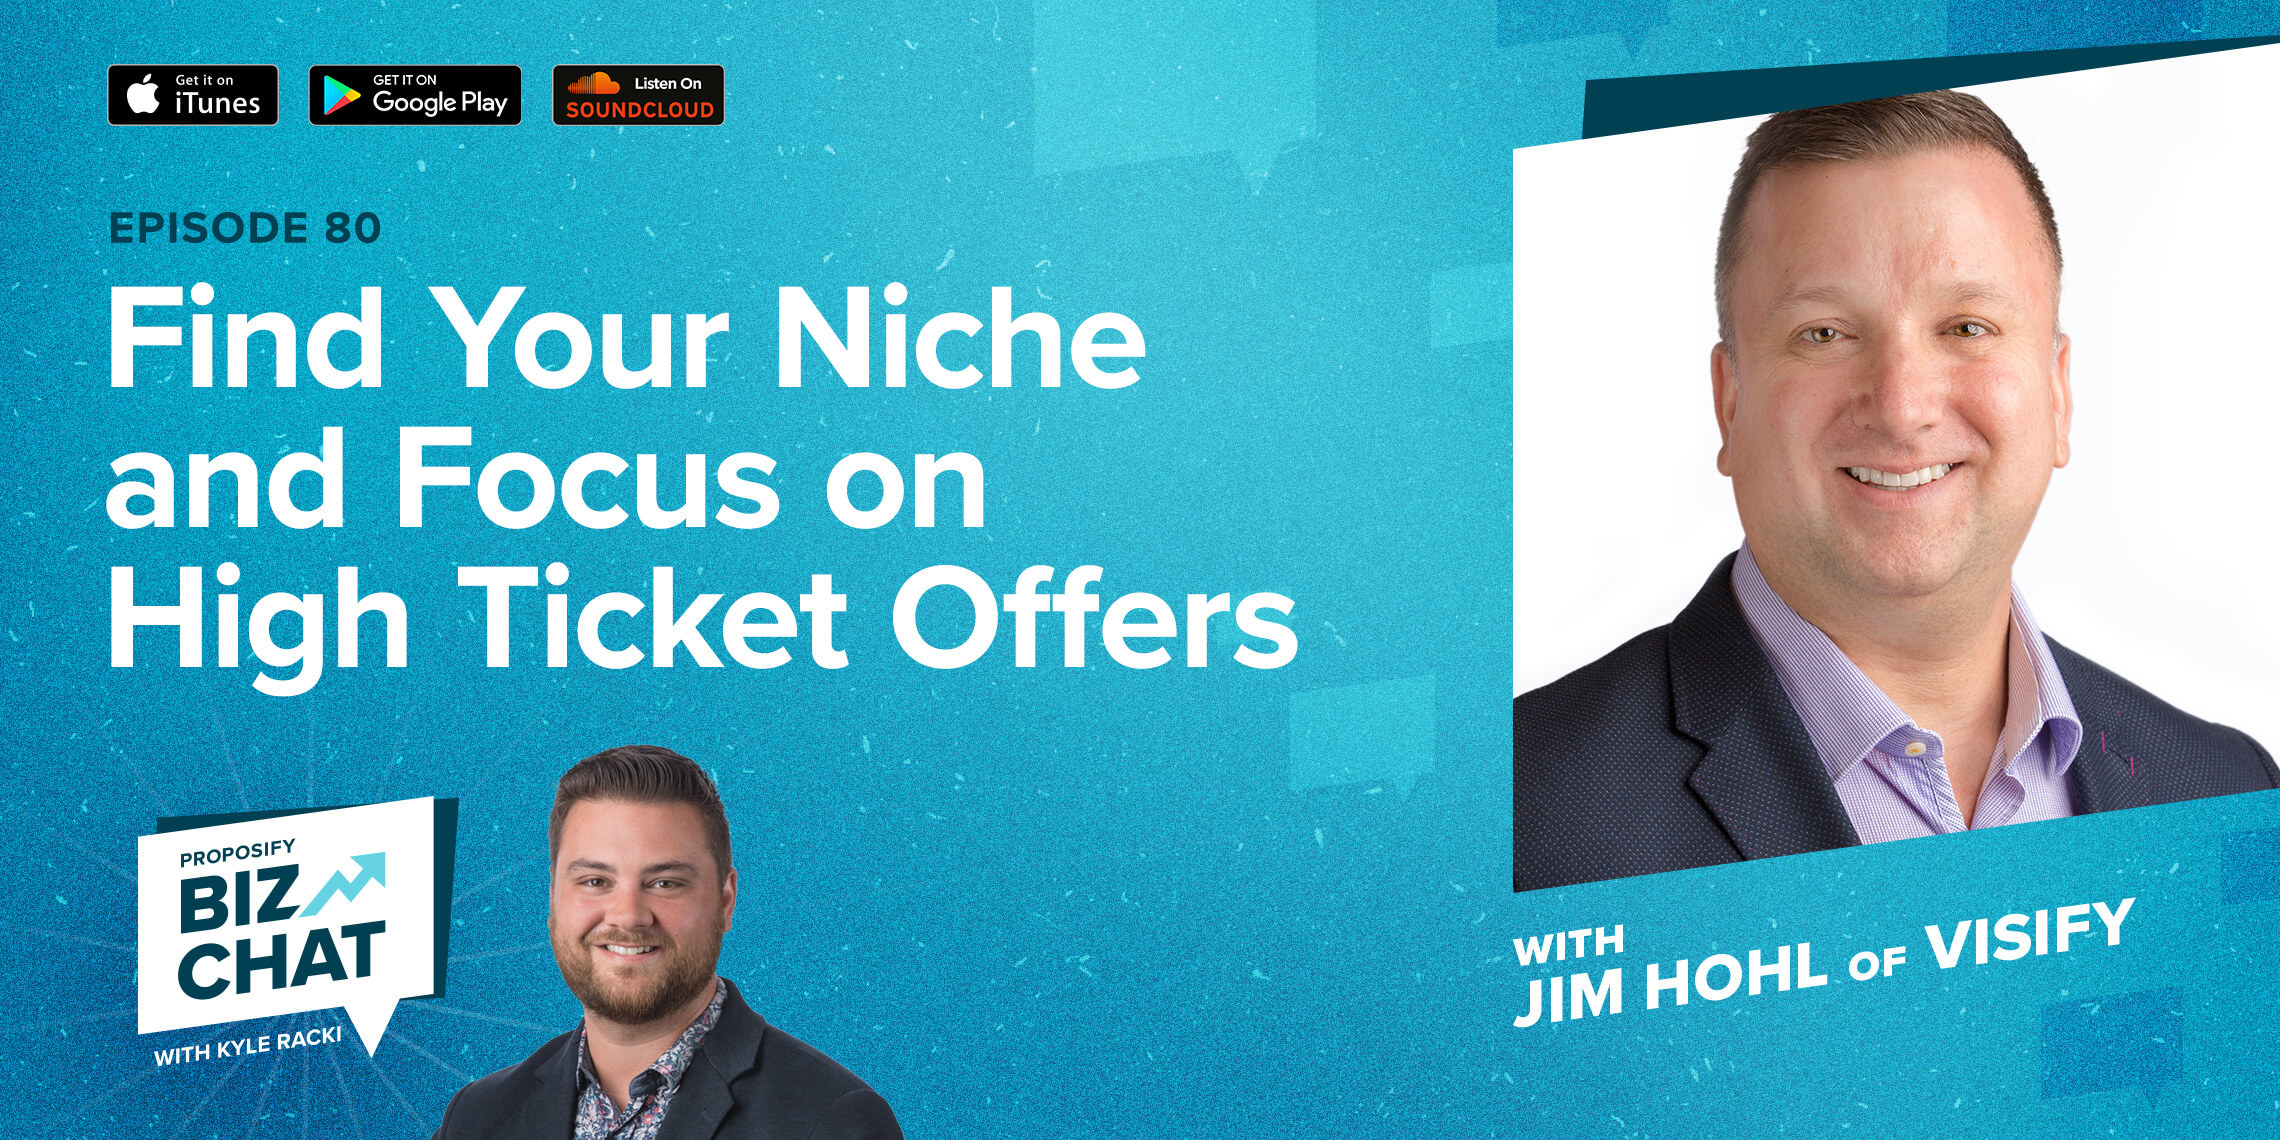 Find Your Niche and Focus on High Ticket Offers